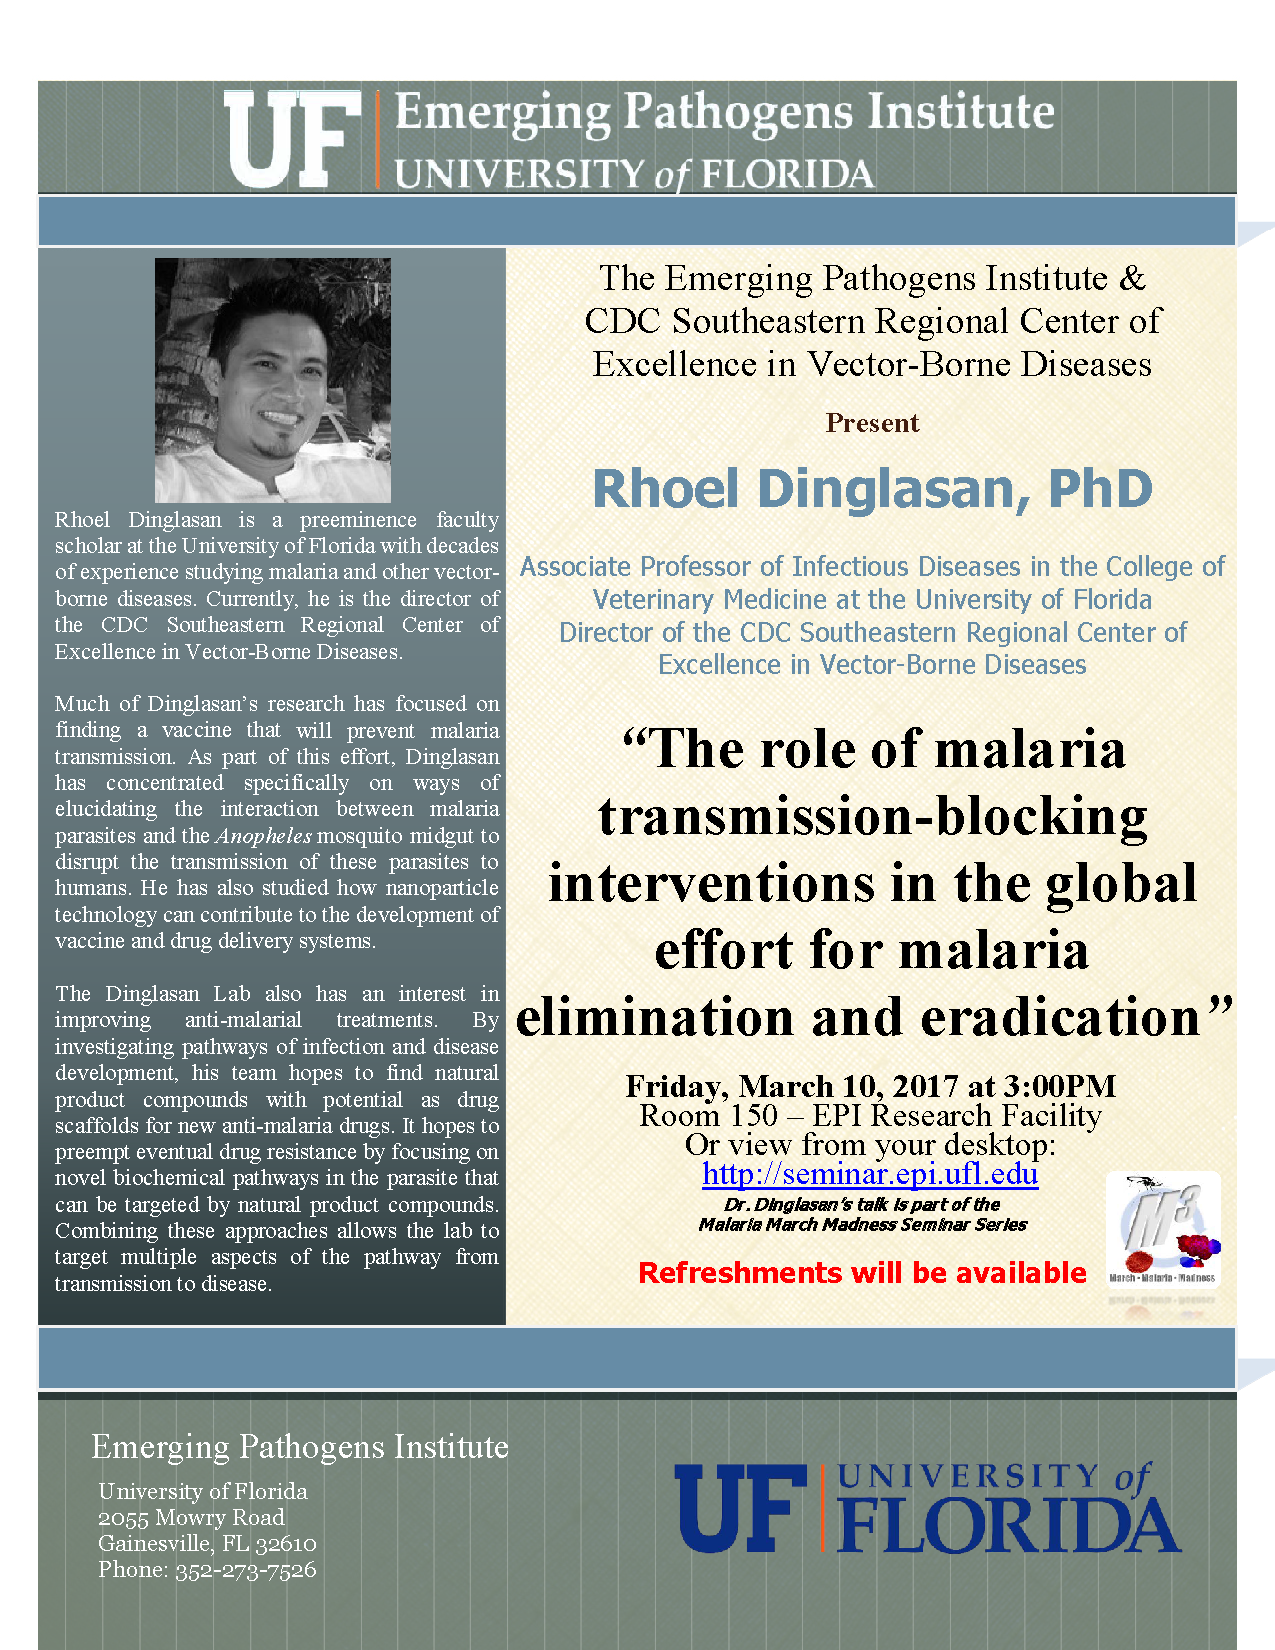 The role of malaria transmission-blocking interventions in the global effort for malaria elimination and eradication